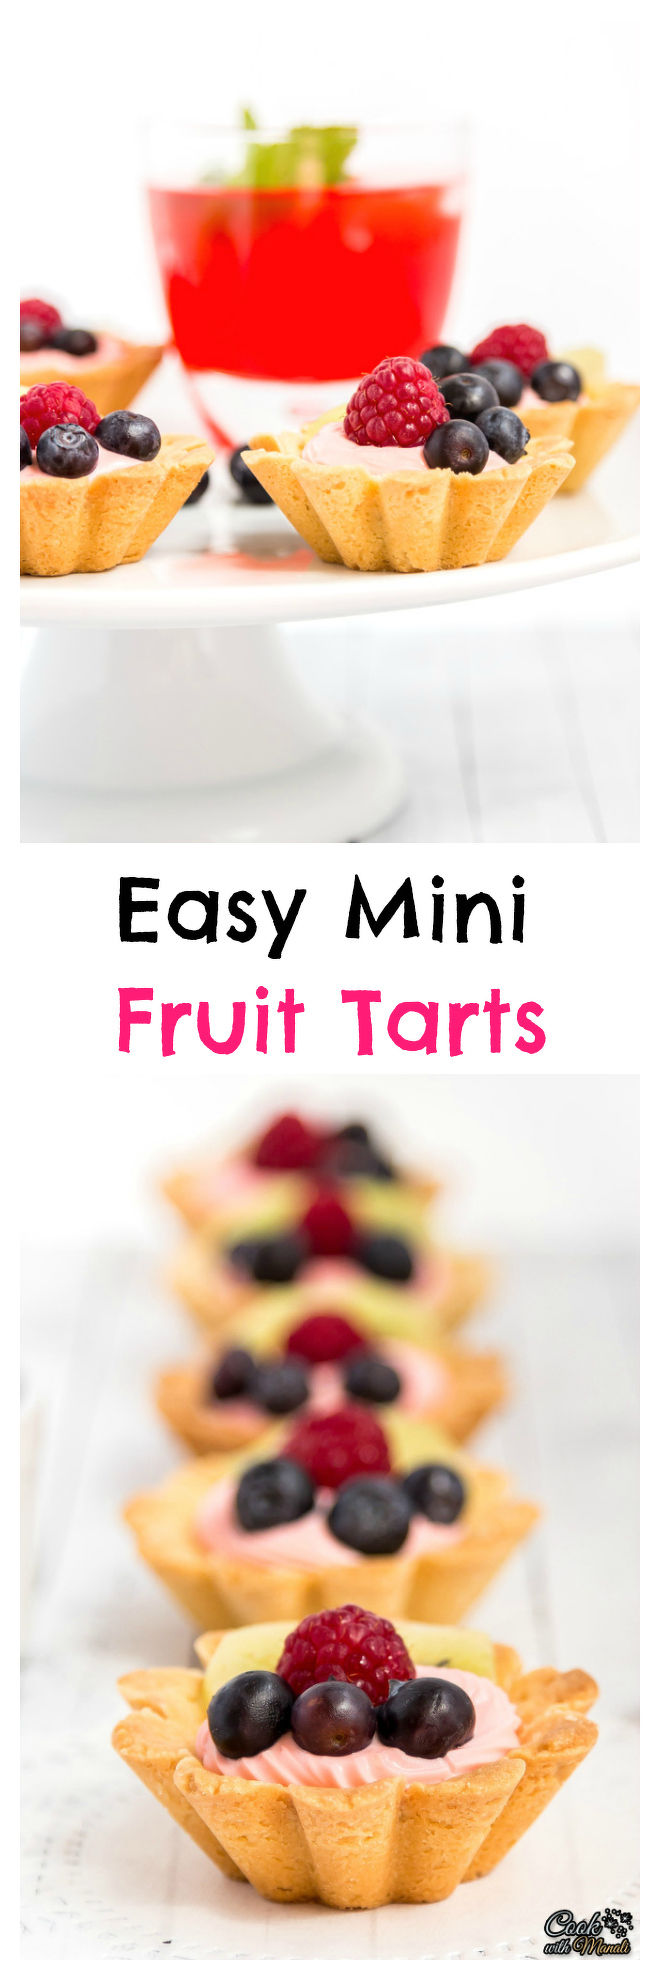 Mini Fruit Tarts Collage-nocwm